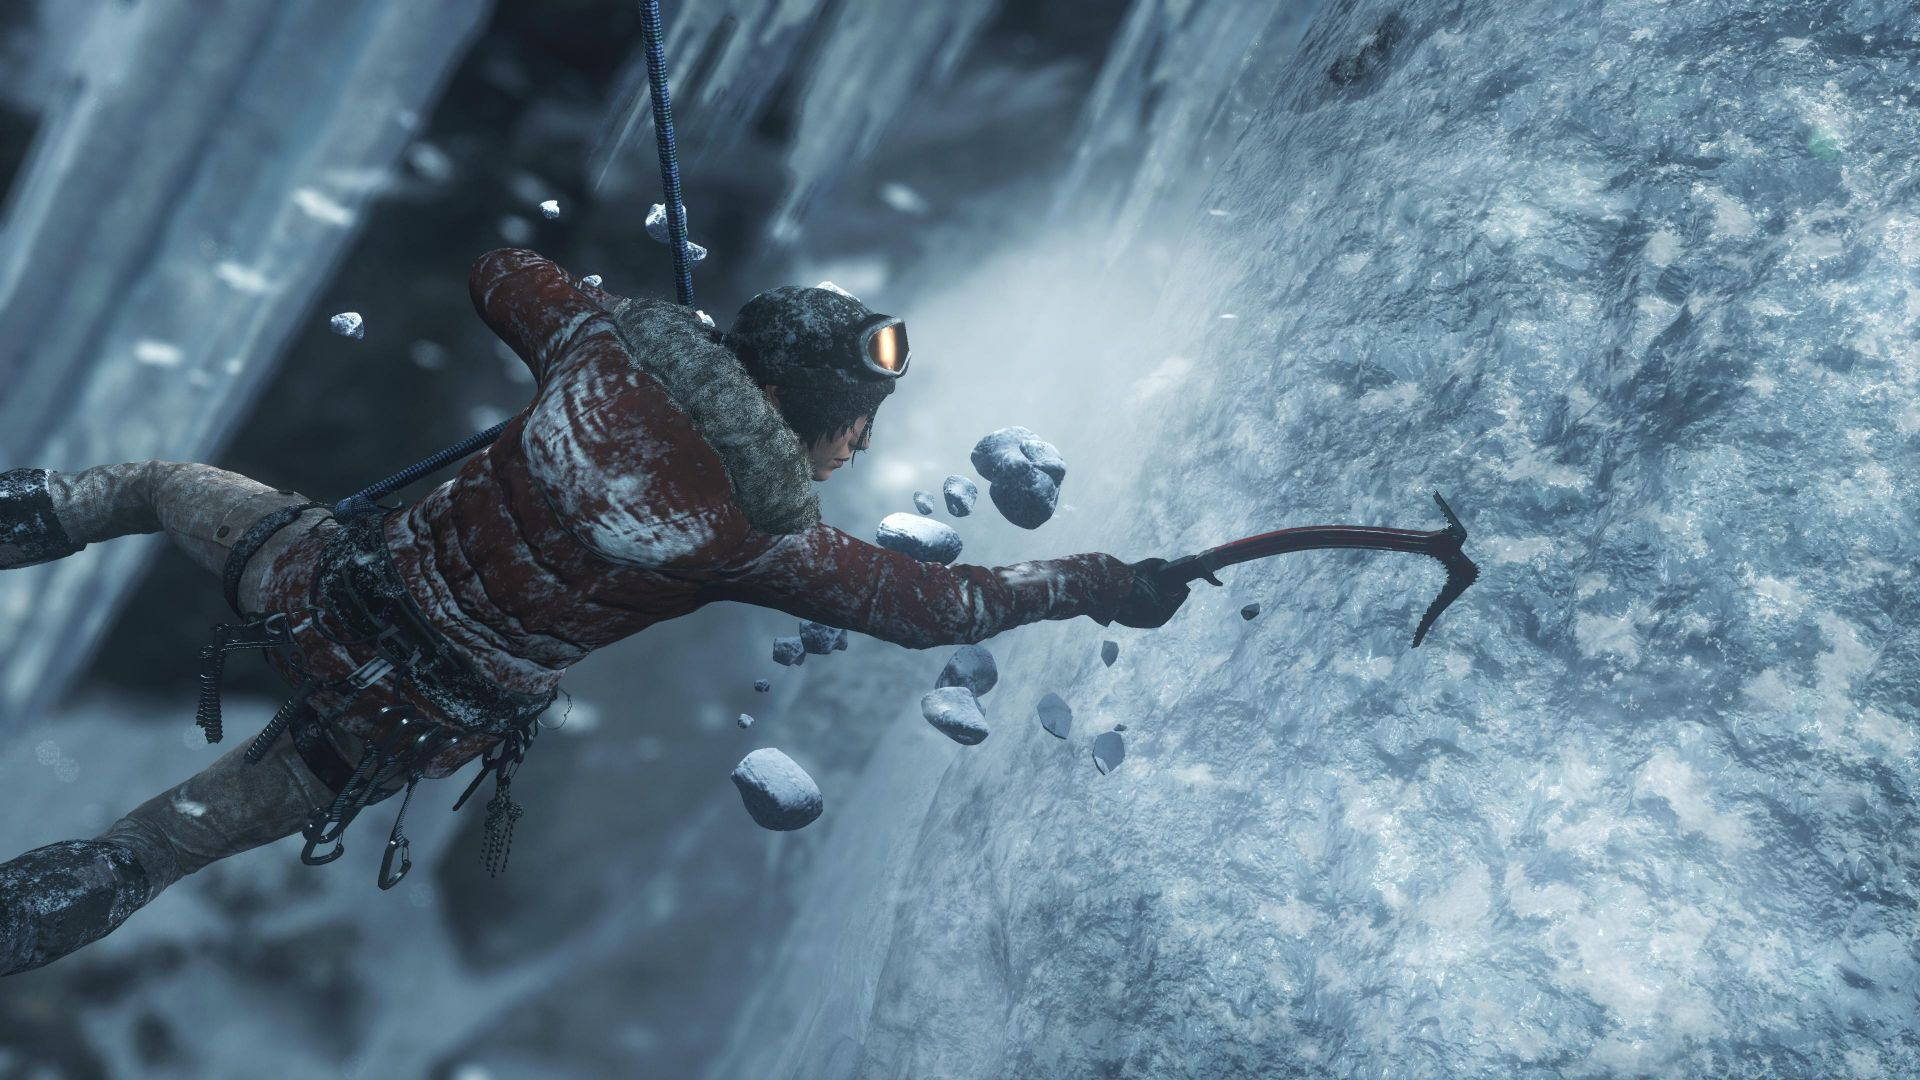 Rise of the Tomb Raider, Лара Крофт, Лучшие игры, ПК, Rise of the Tomb Raider, Lara Croft, Best Games, PC (horizontal)